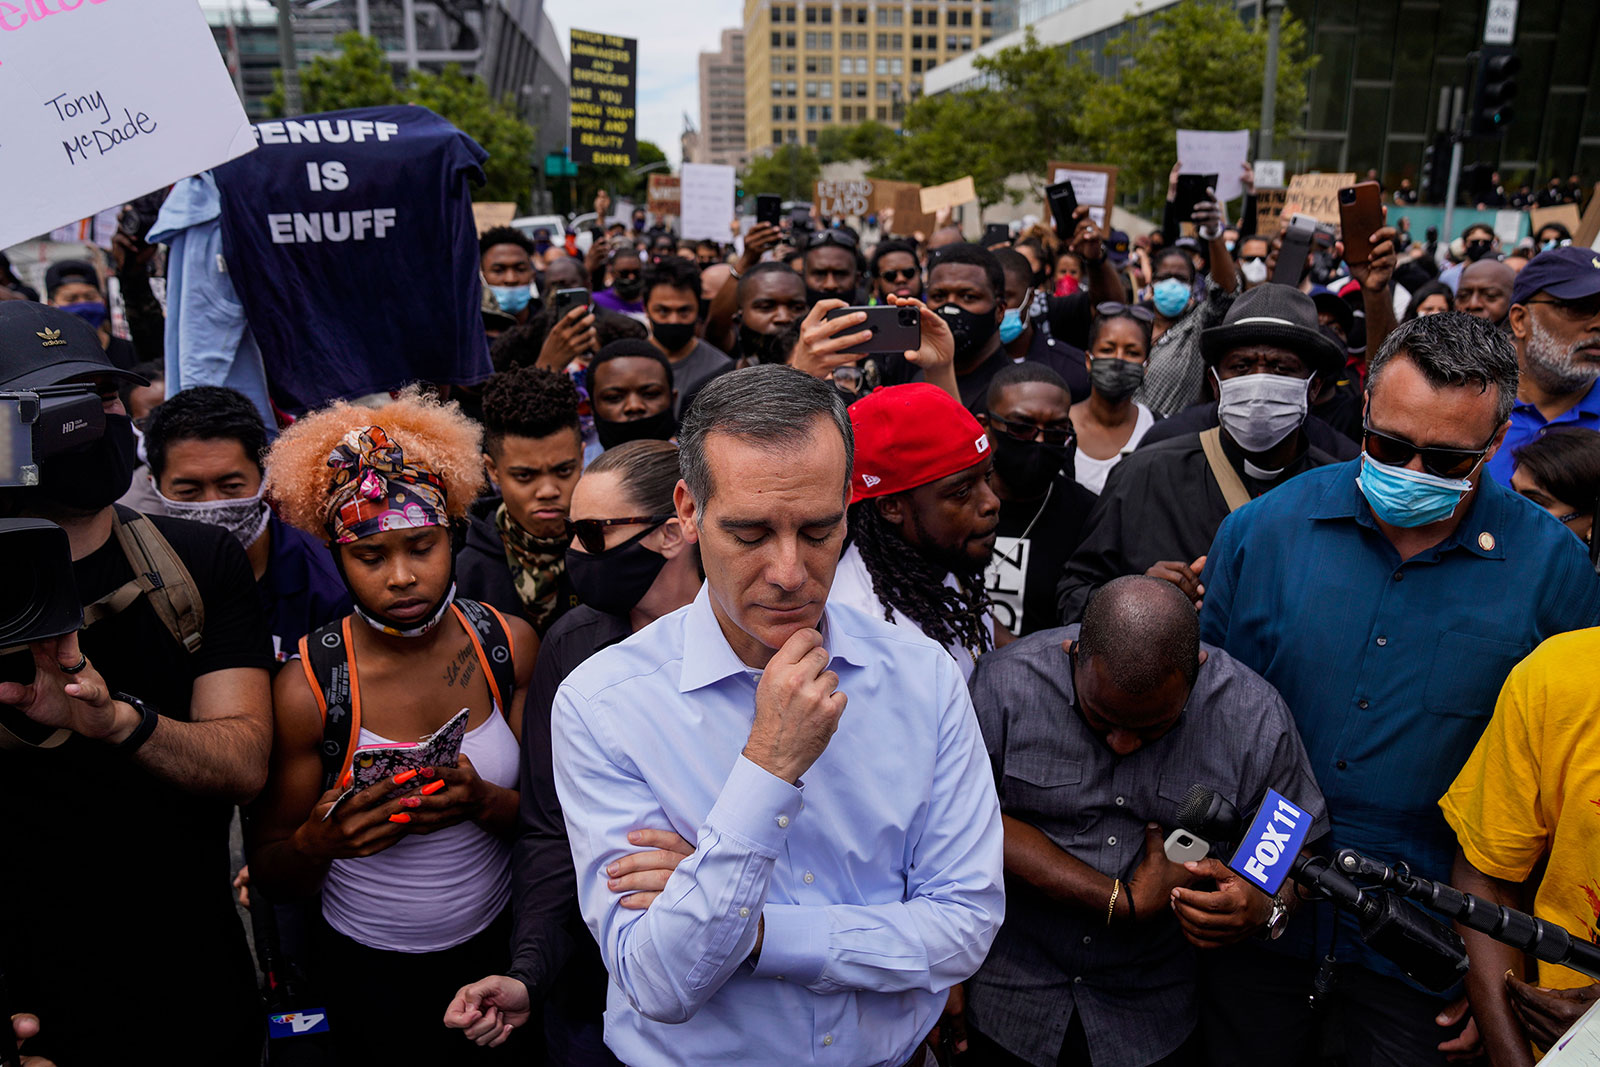 Los Angeles Mayor Eric Garcetti stands with protesters in downtown Los Angeles outside of City Hall on Tuesday, June 2.